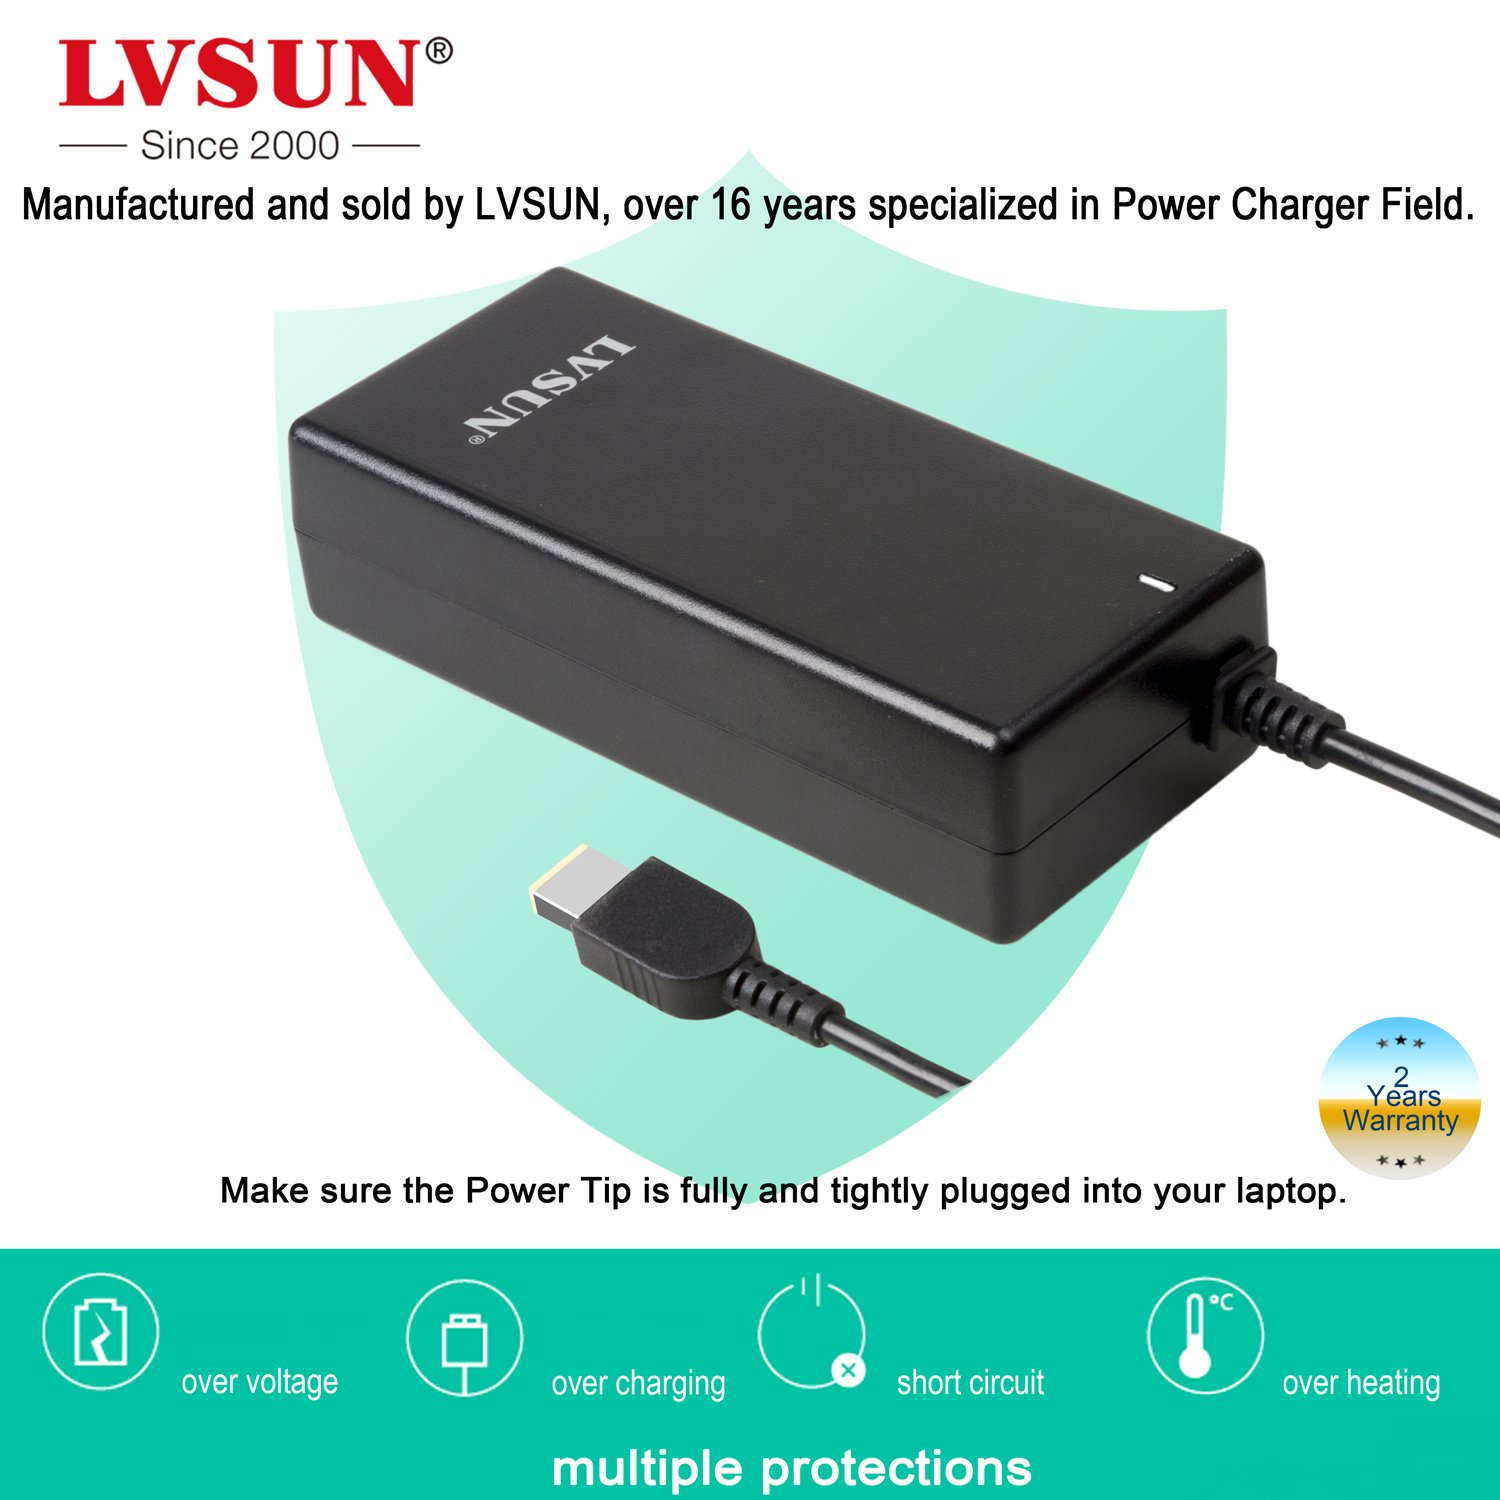 Lvsun Laptop Charger For Lenovo Rectangle Dc Head Laptops Power Cords Of 65w Hp Dell With Shortcircuit Output 20v 325a Durable Ac Adapter Supply Cord 100 Compatible Oem